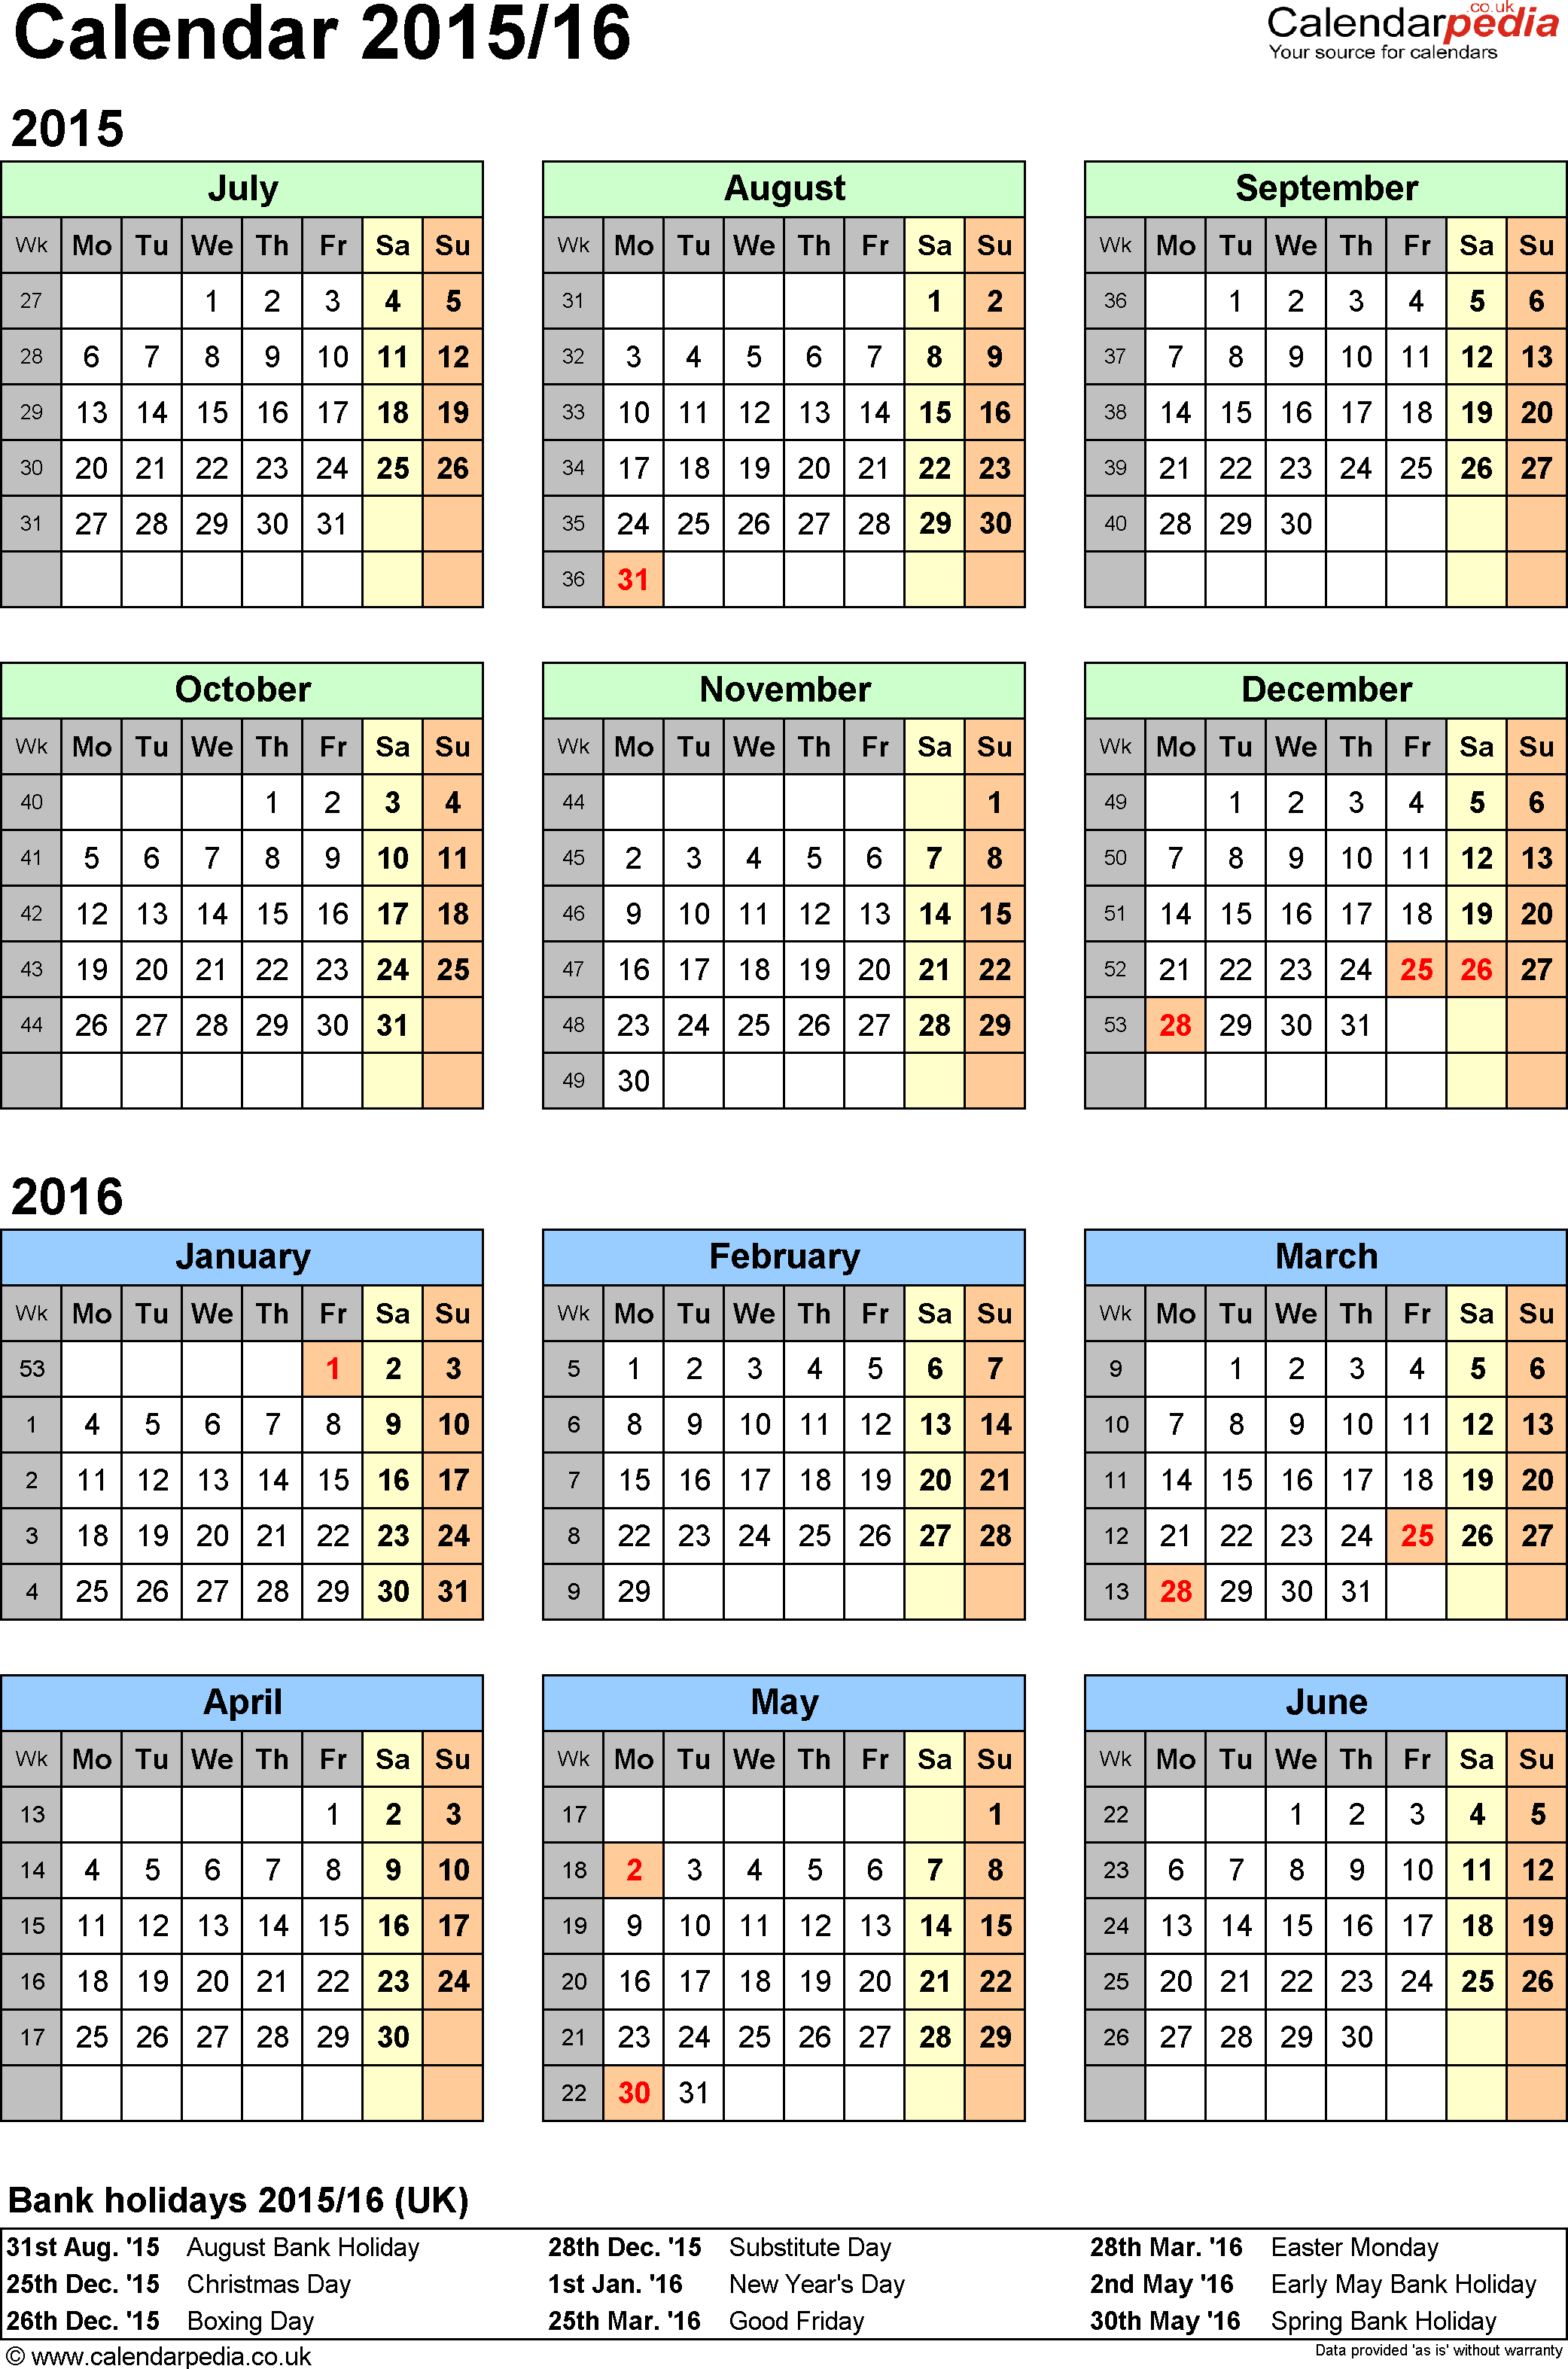 Split year calendars 2015/16 (July to June) for PDF (UK version)